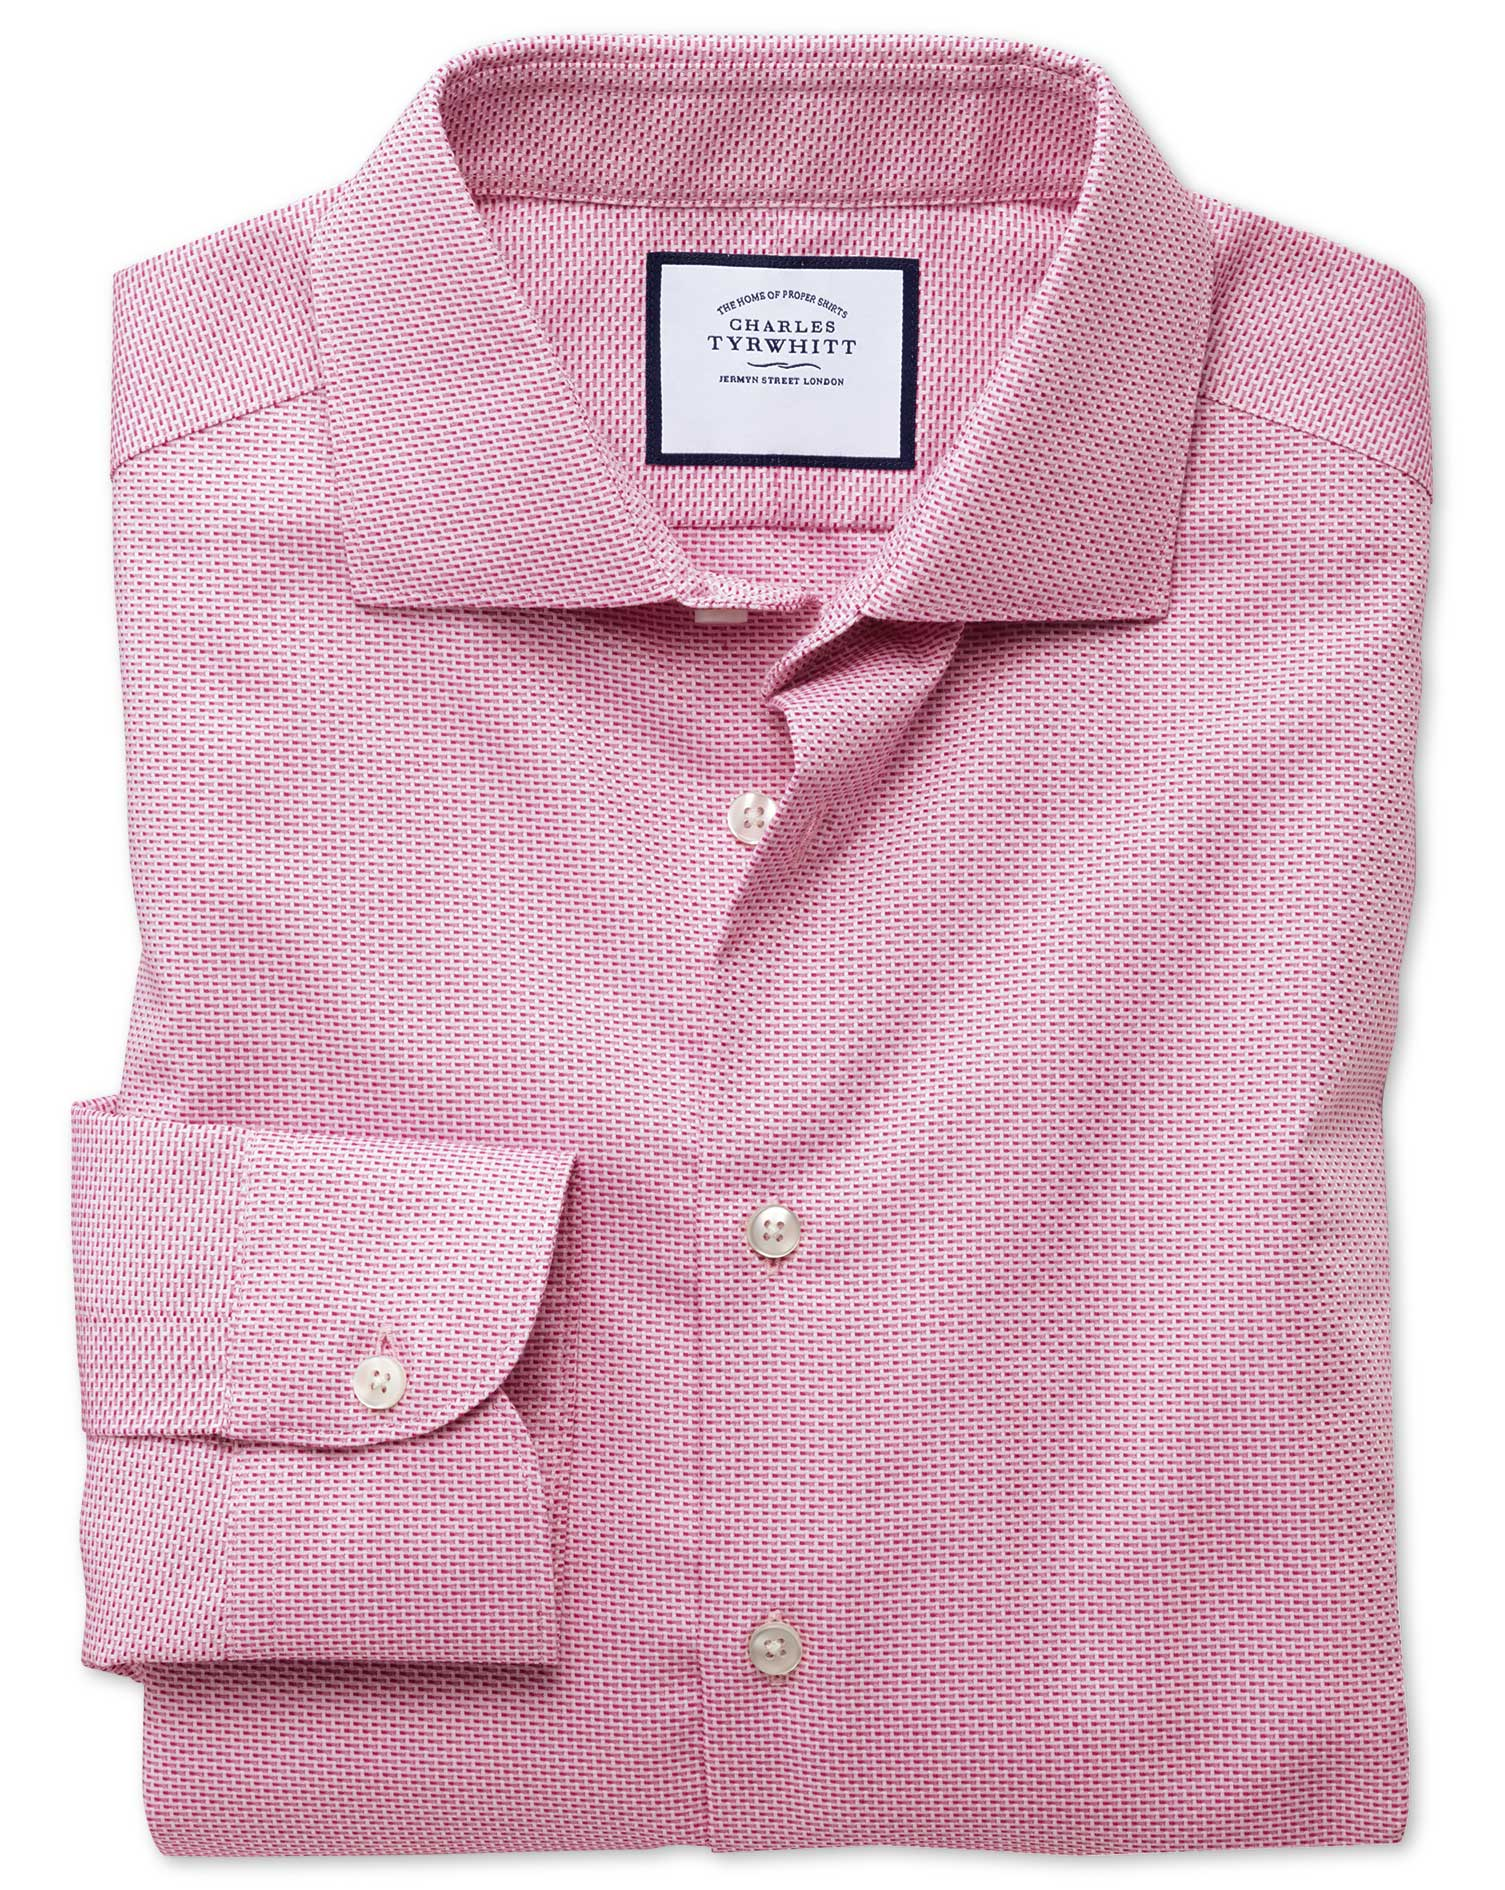 Extra Slim Fit Semi-Cutaway Business Casual Non-Iron Modern Textures Pink Dash Cotton Formal Shirt S